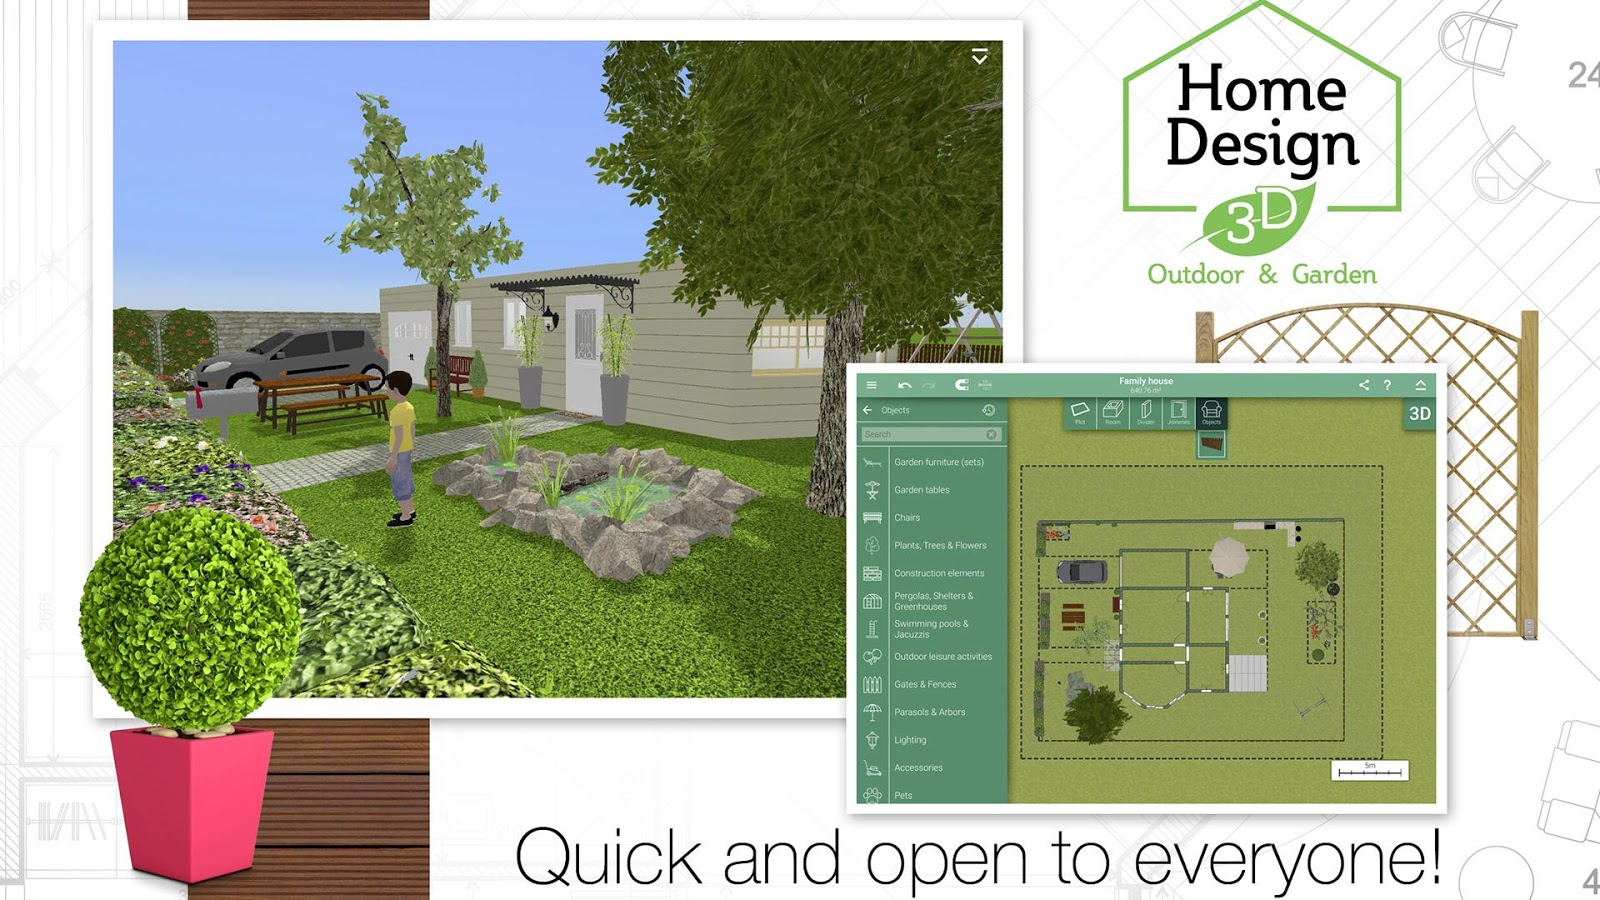 free home design software for ipad 2. home design 3d outdoor/garden- screenshot free software for ipad 2